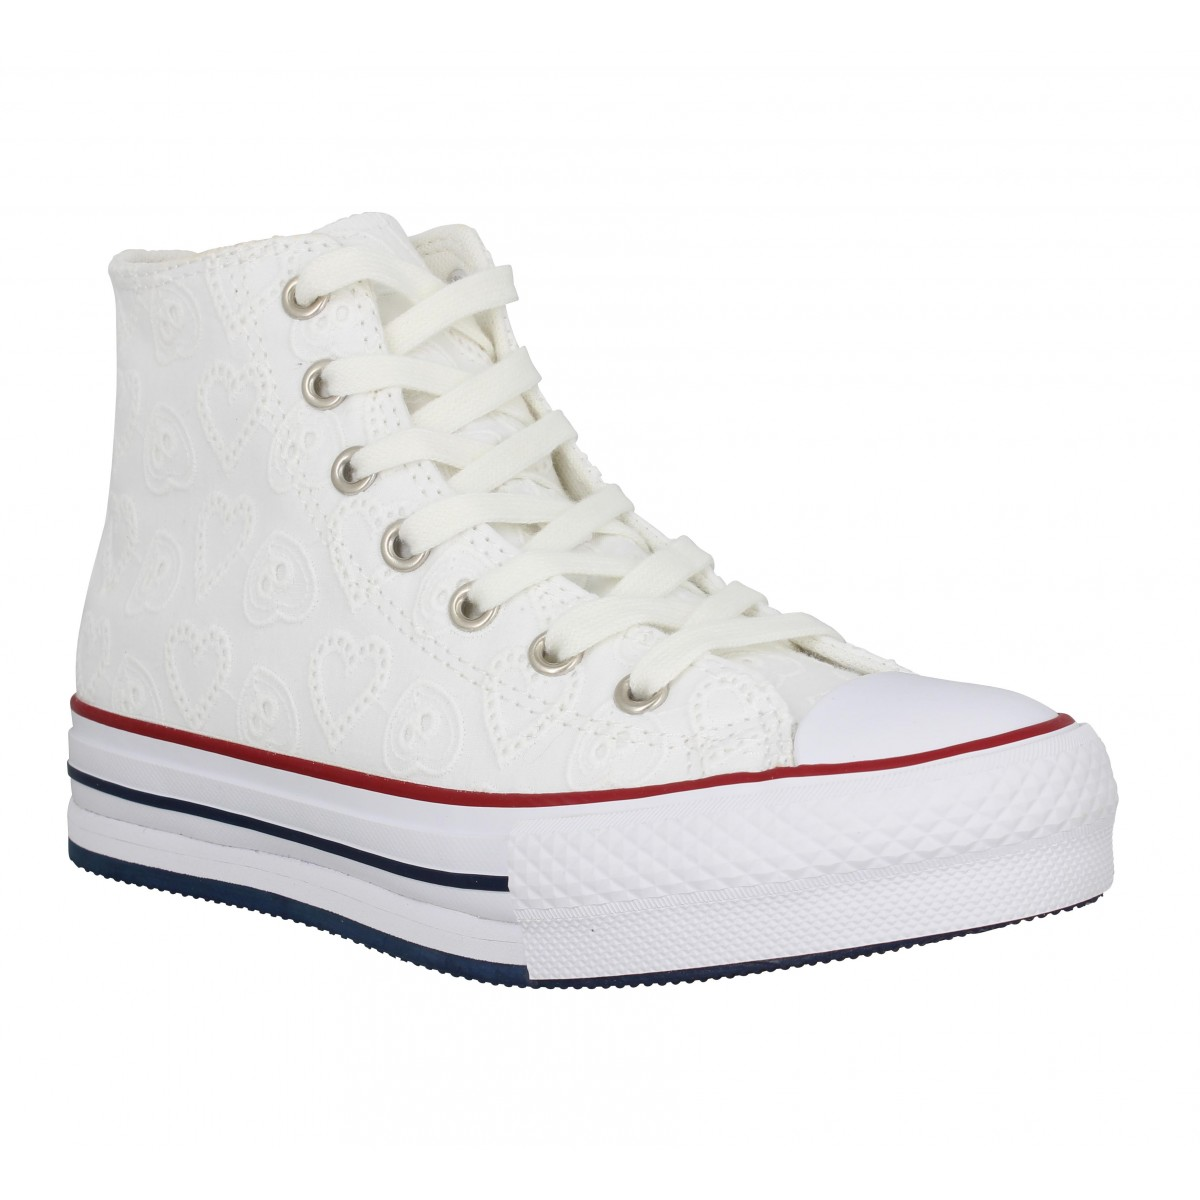 Baskets CONVERSE Chuck Taylor All Star Eva Lift Hi toile brodee Enfant Blanc